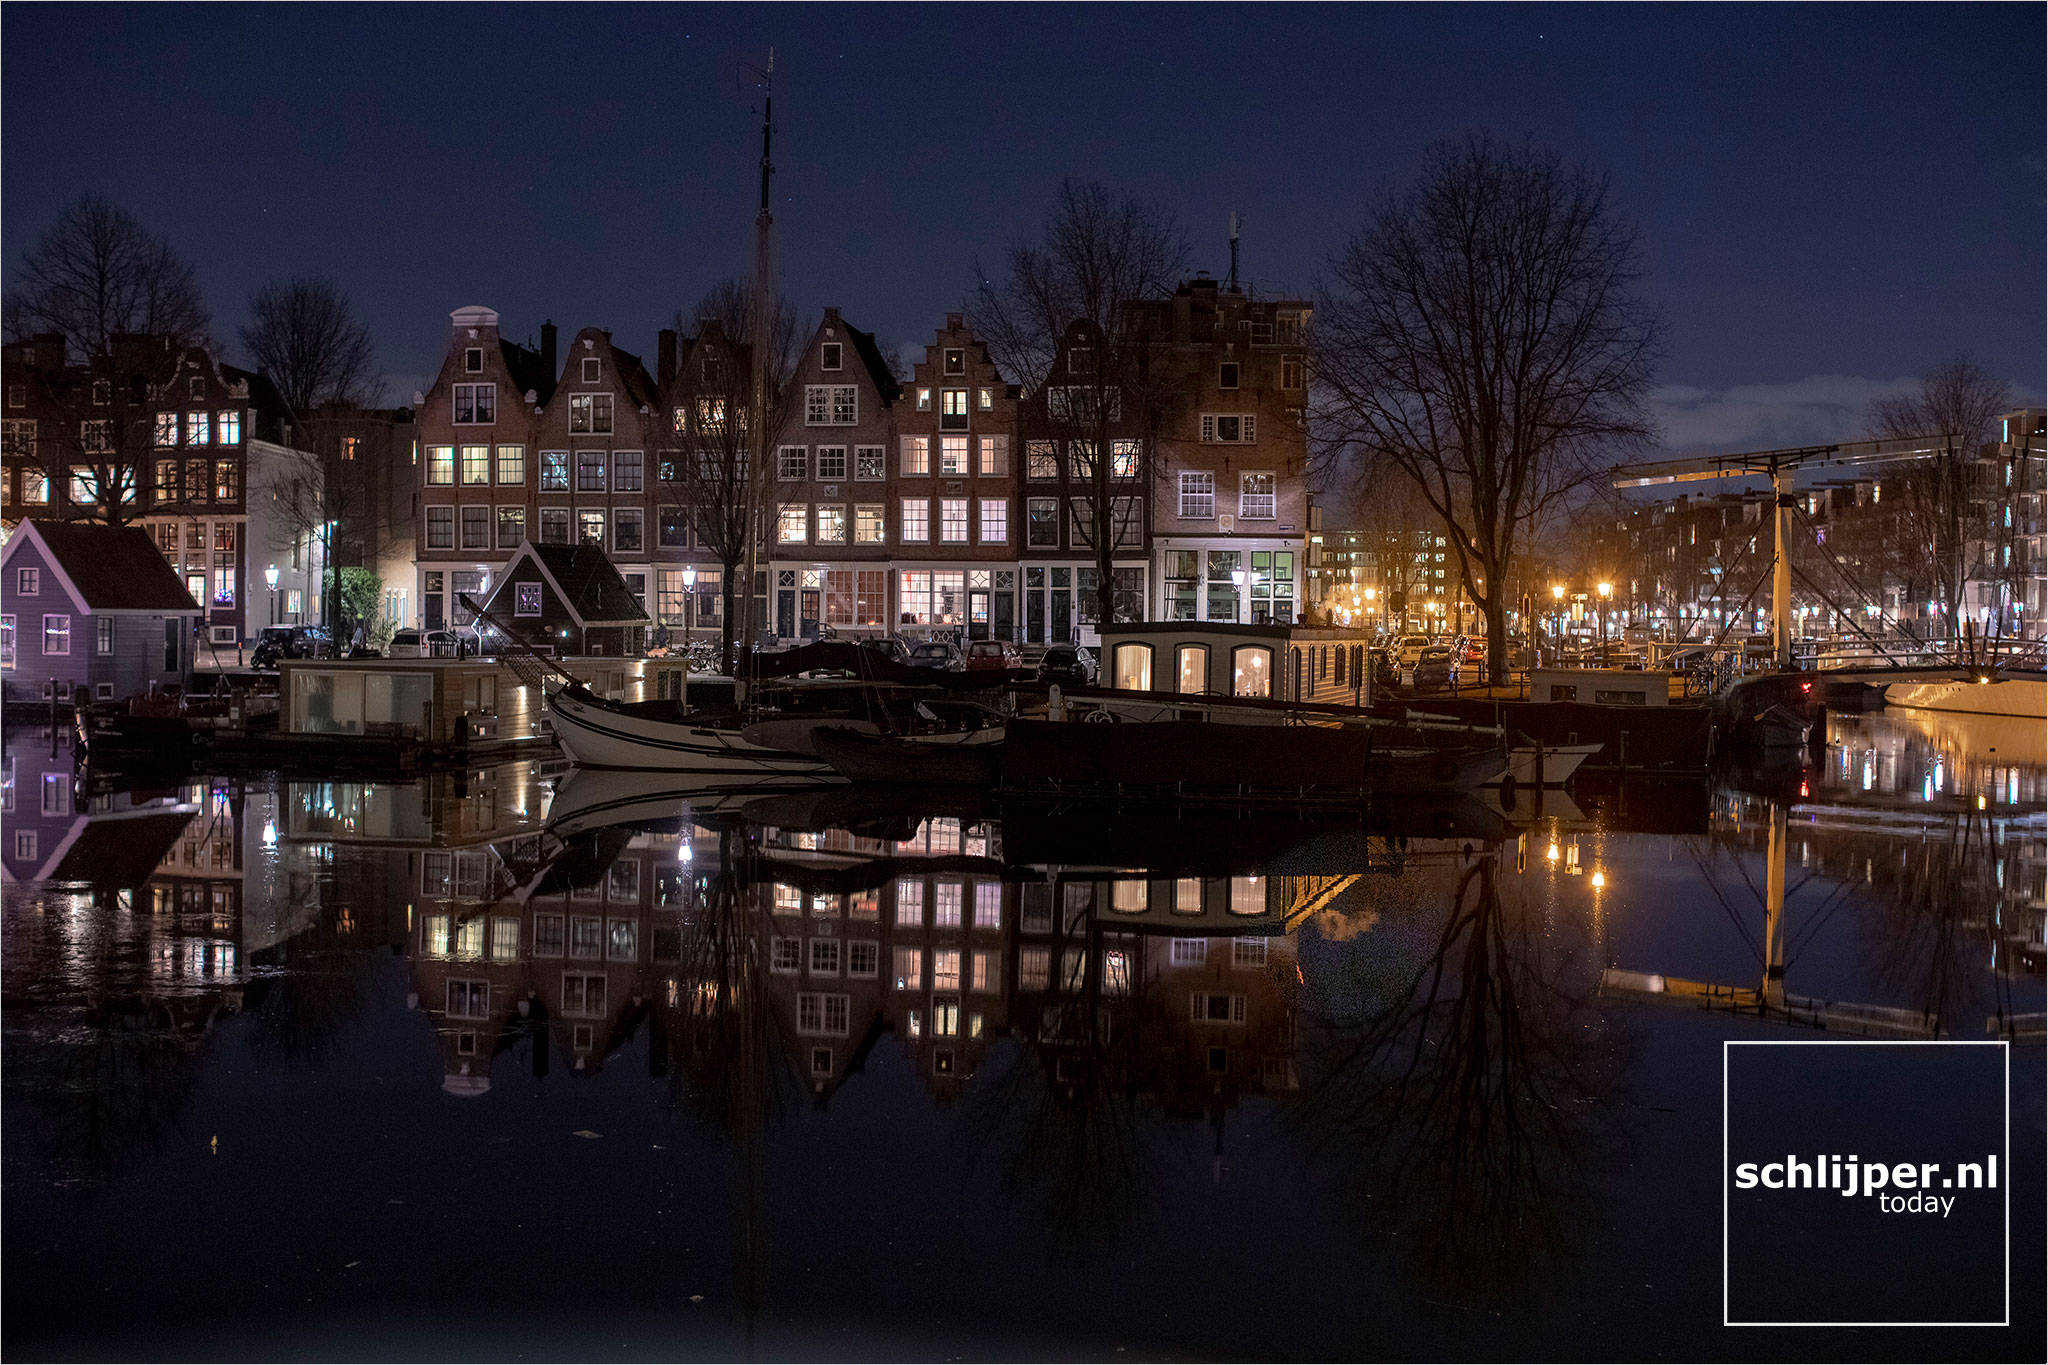 The Netherlands, Amsterdam, 9 januari 2021